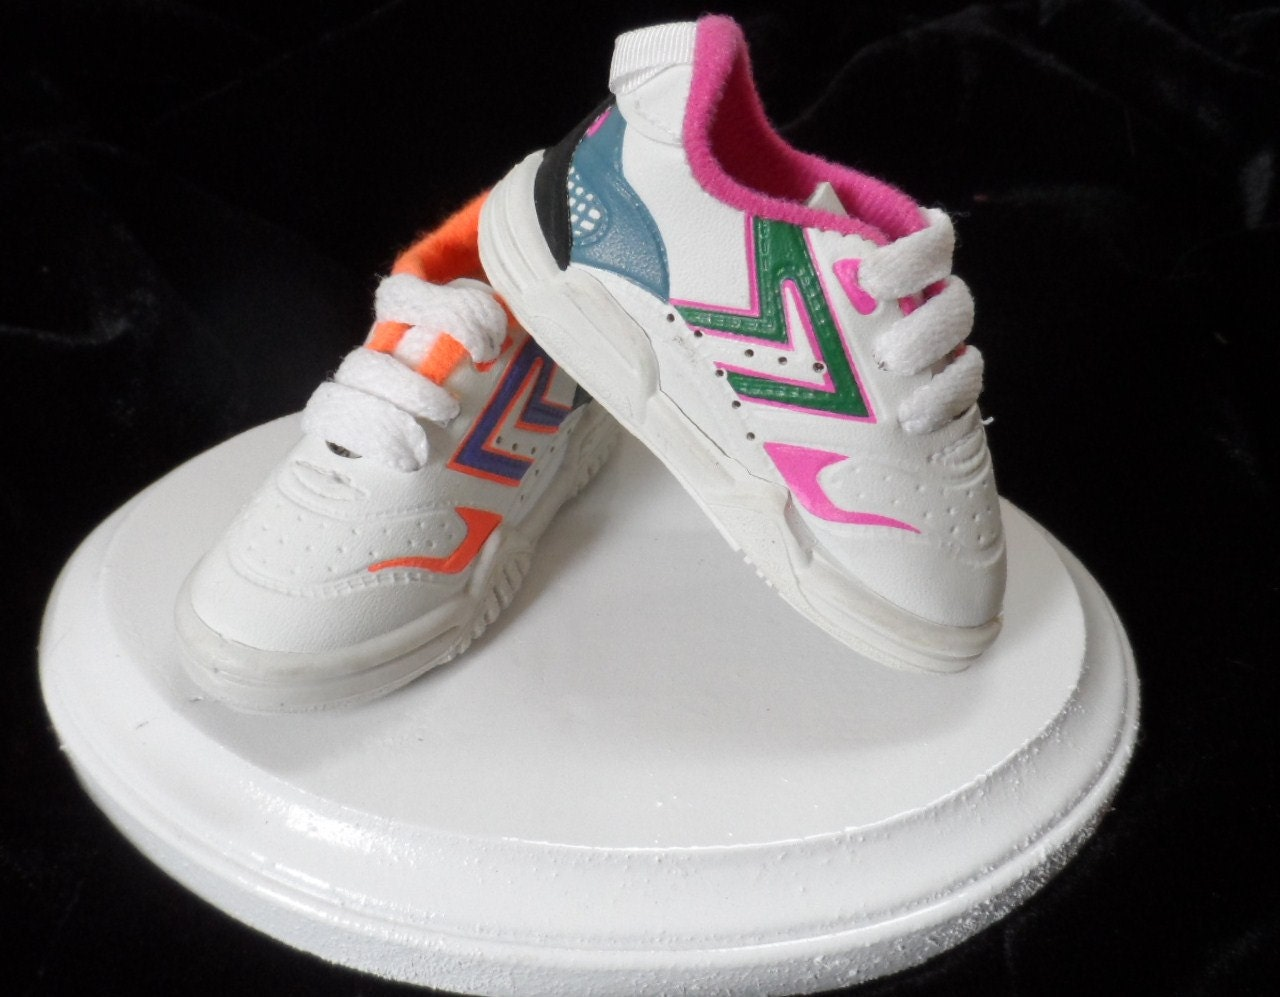 running shoes sneakers tennis shoes wedding cake topper